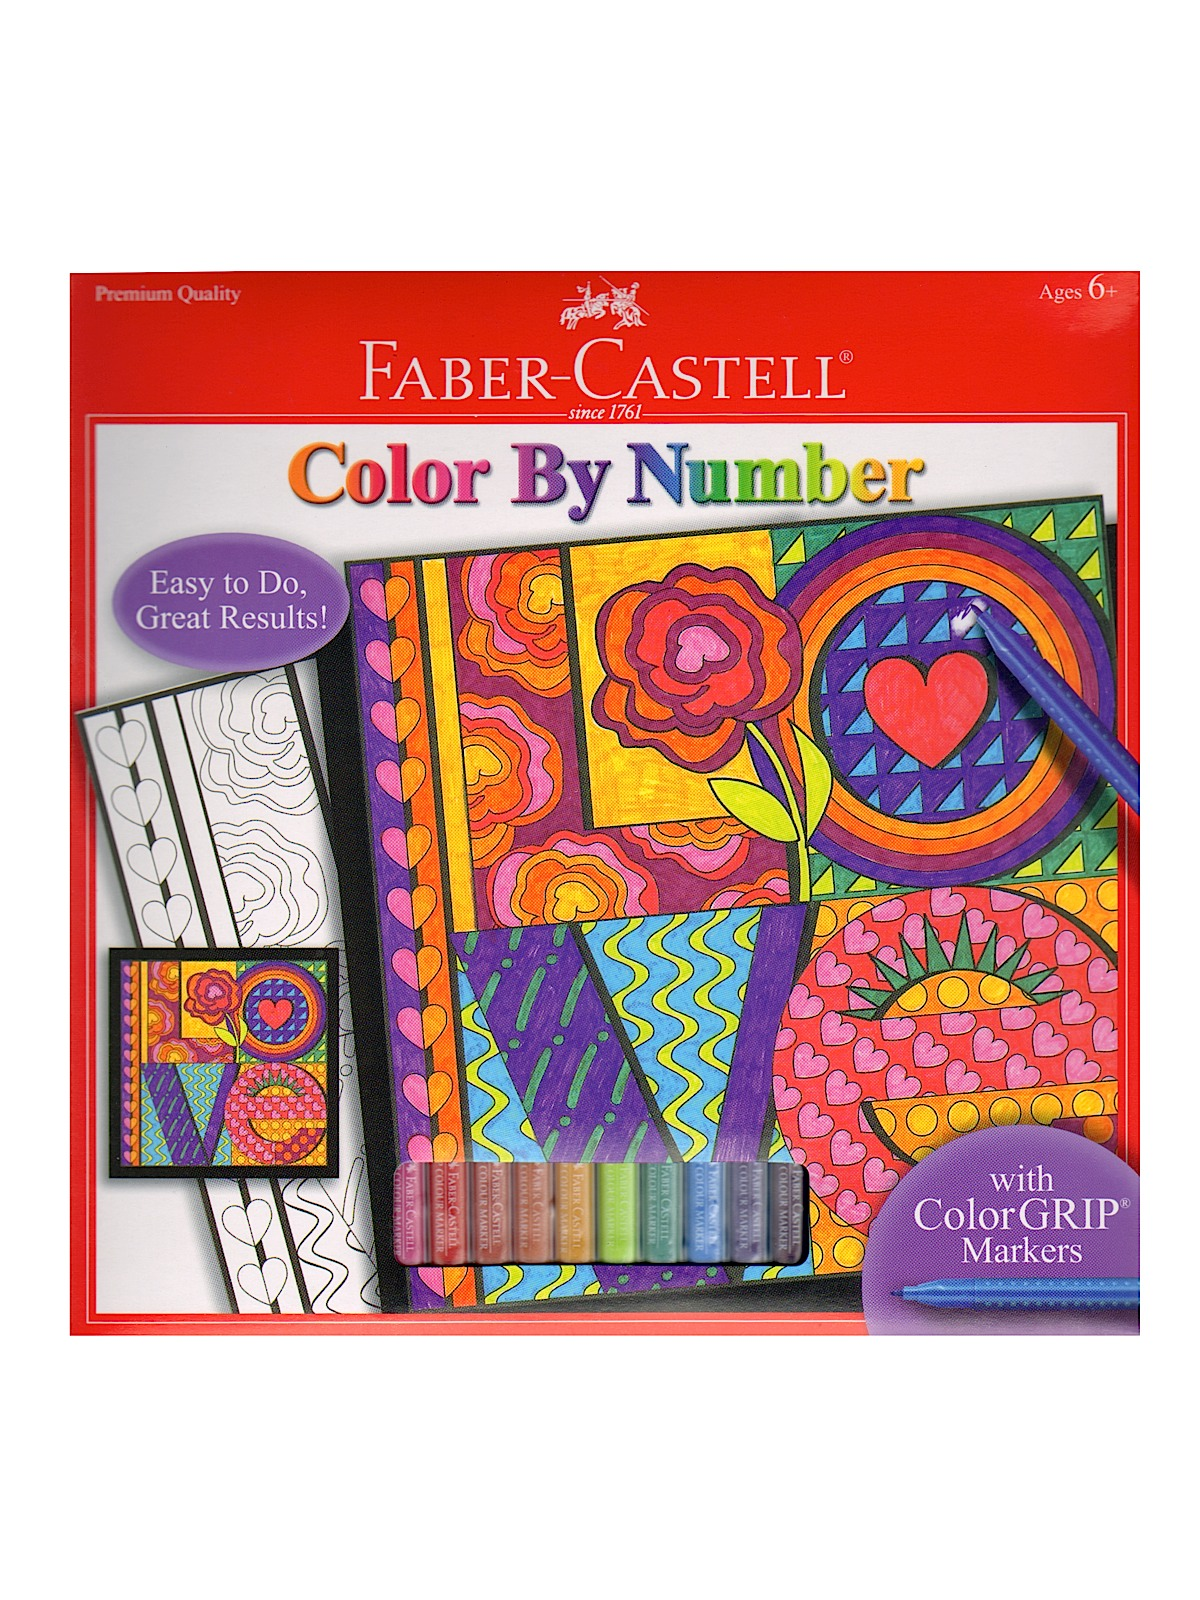 Color by Number with Markers Kits